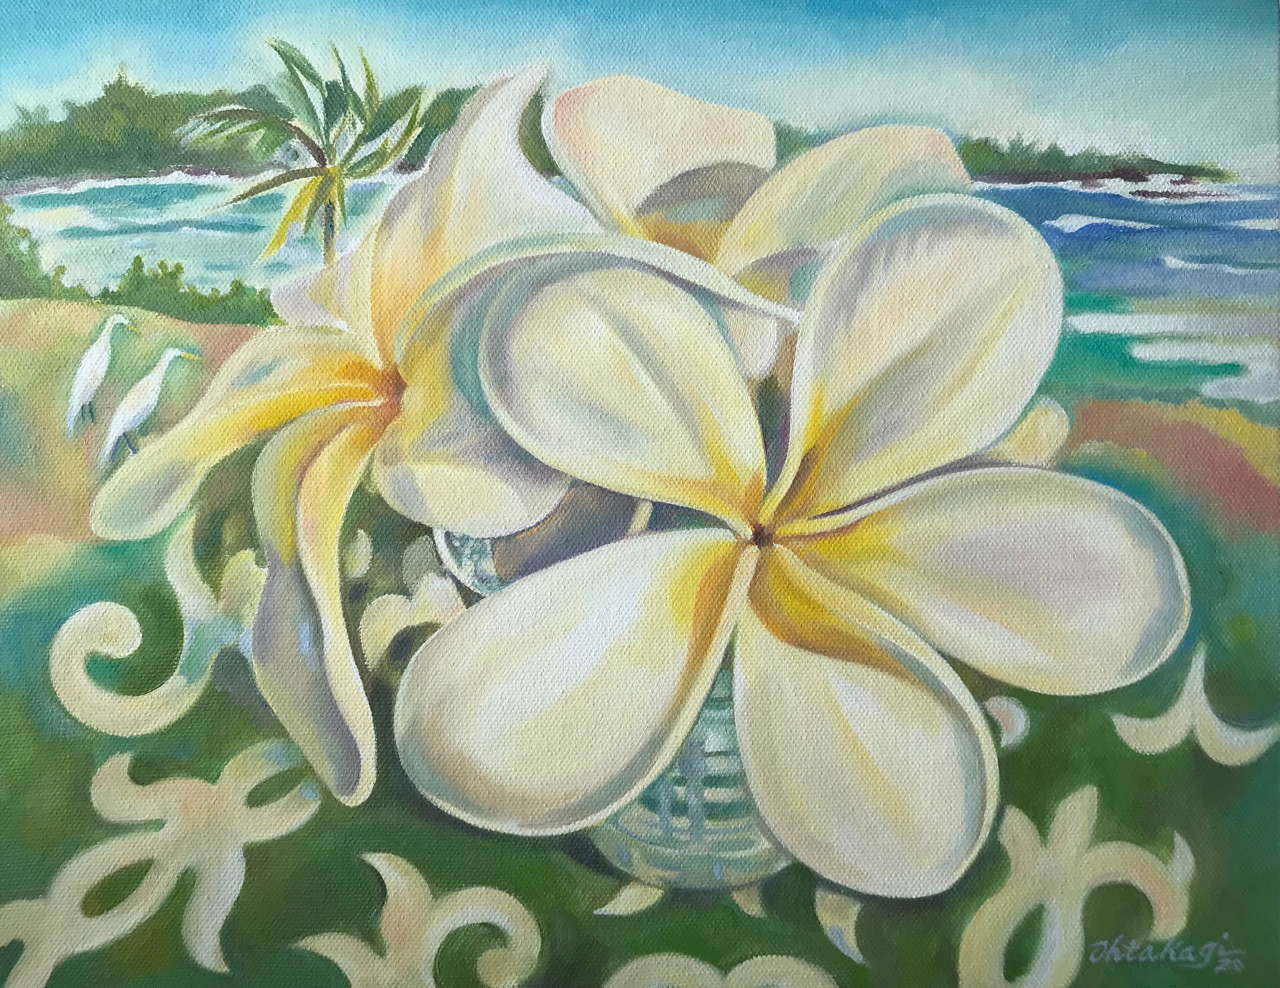 Original Oil by Artist Hilo Ohtakagi